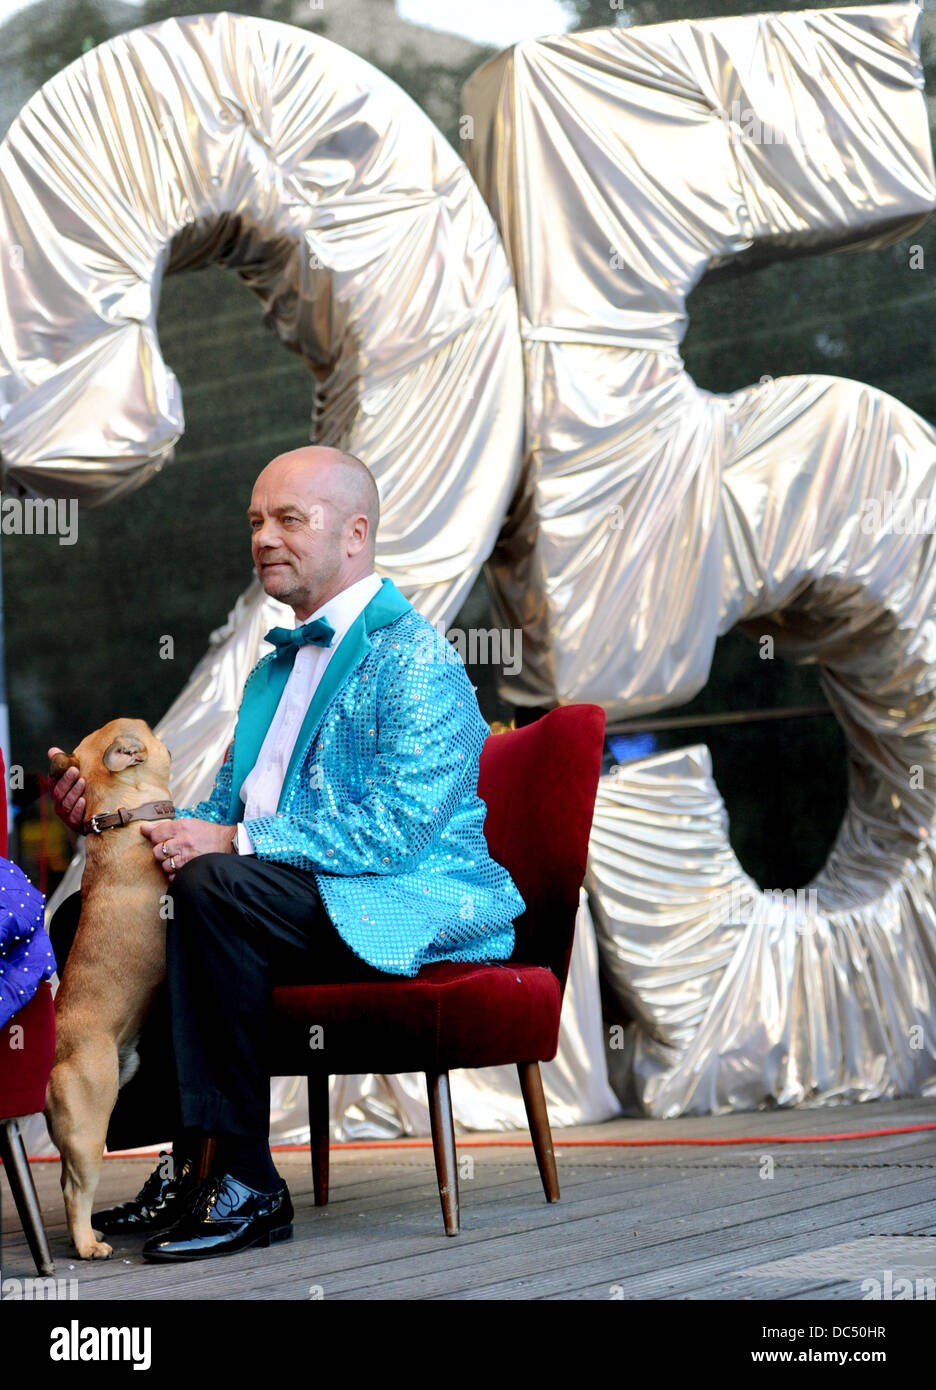 Hamburg, Germany. 08th Aug, 2013. One of the managers Corny Littmann sits with his dog during the Schmidt Theater's - Stock Image